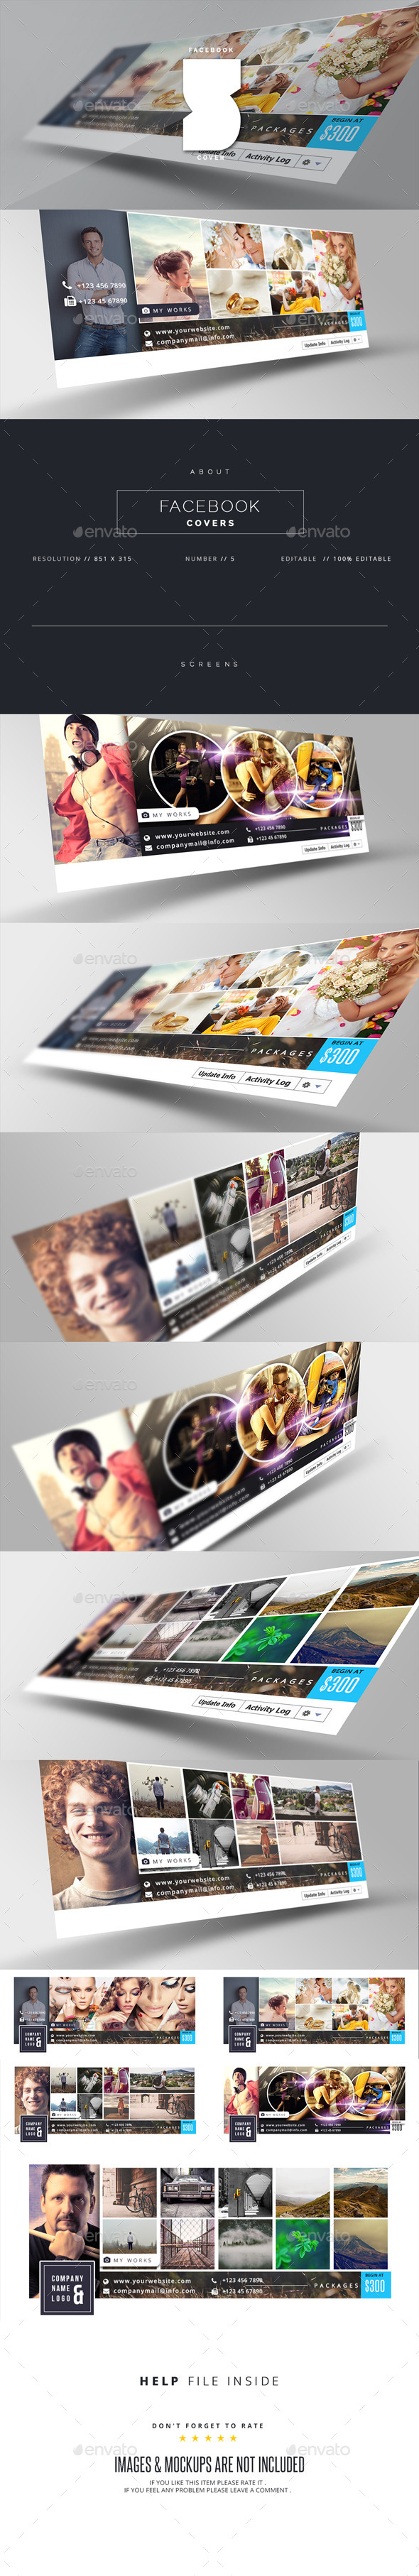 GraphicRiver Facebook Timeline Cover 11035845